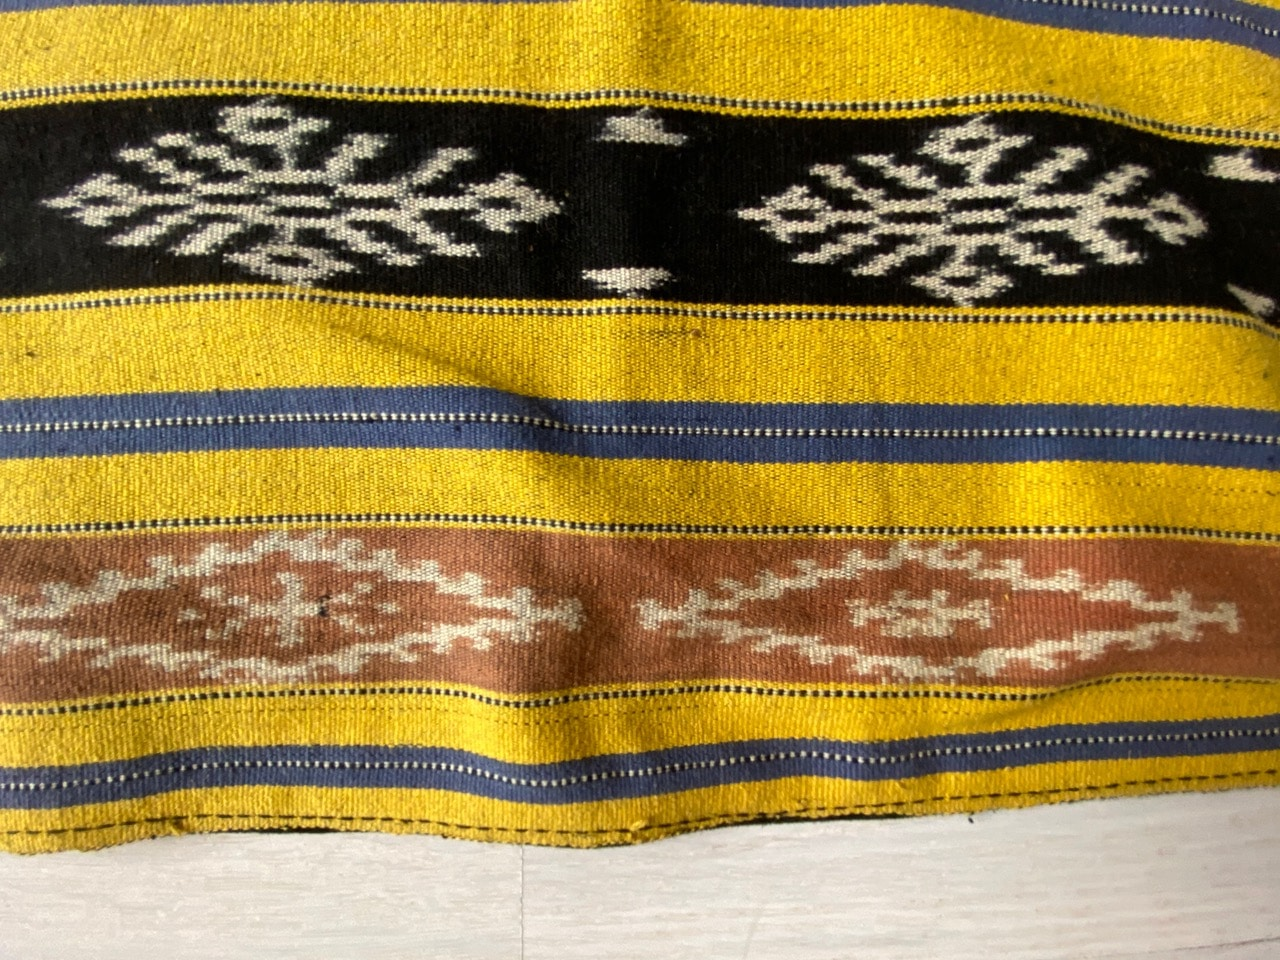 antique Ikat textile from the island of Sumba